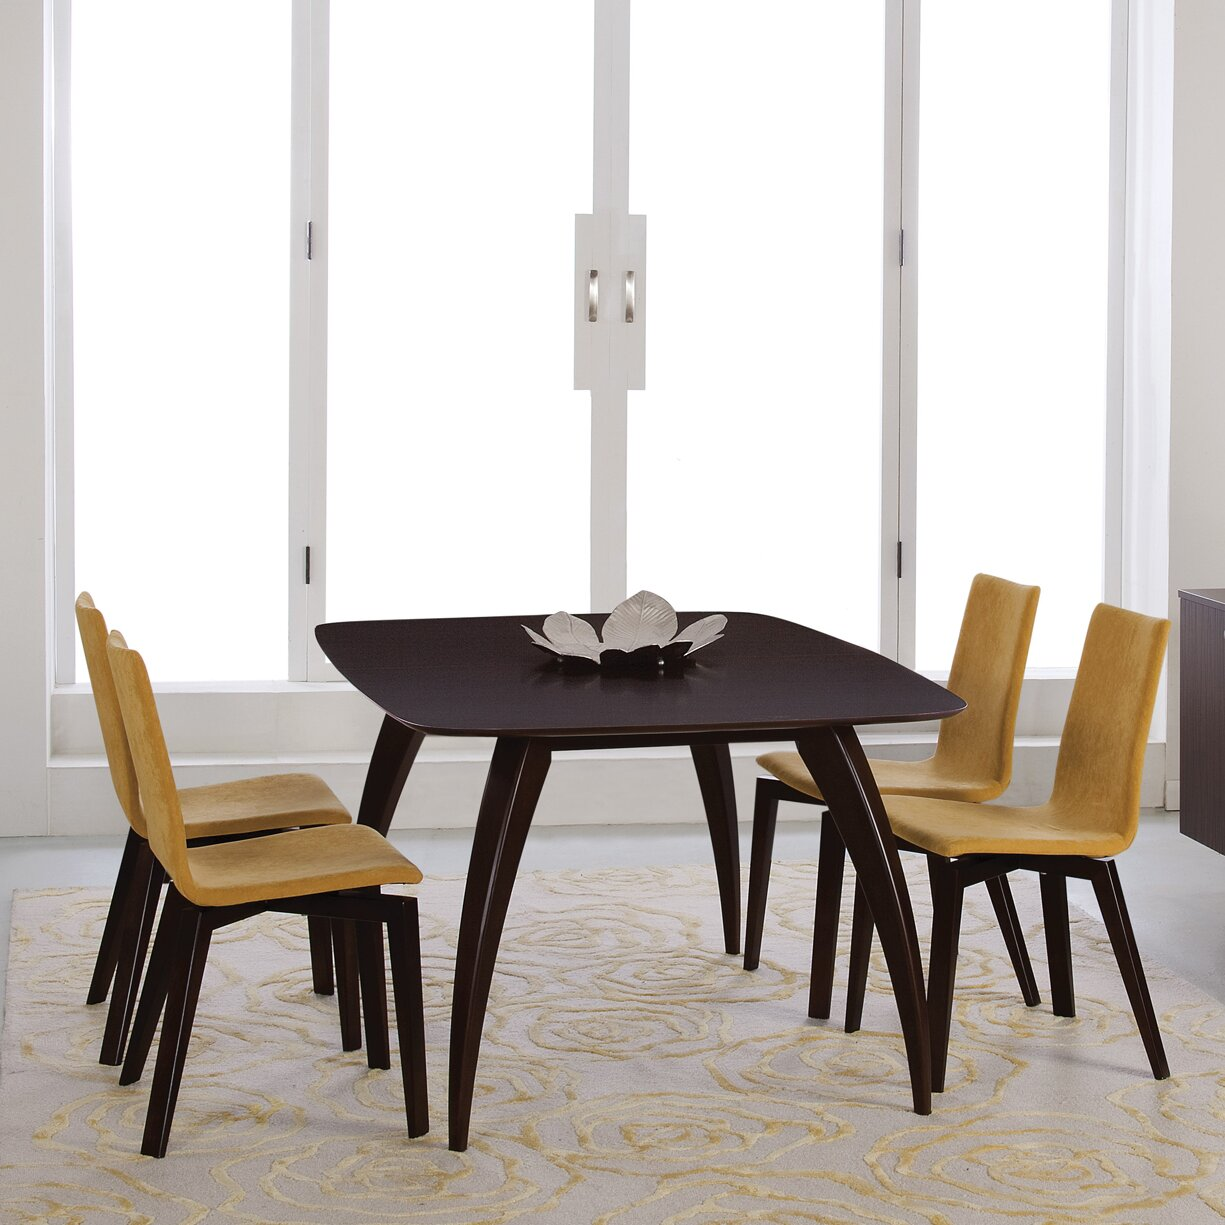 Saloom furniture kira extendable dining table wayfair for Wayfair dining table